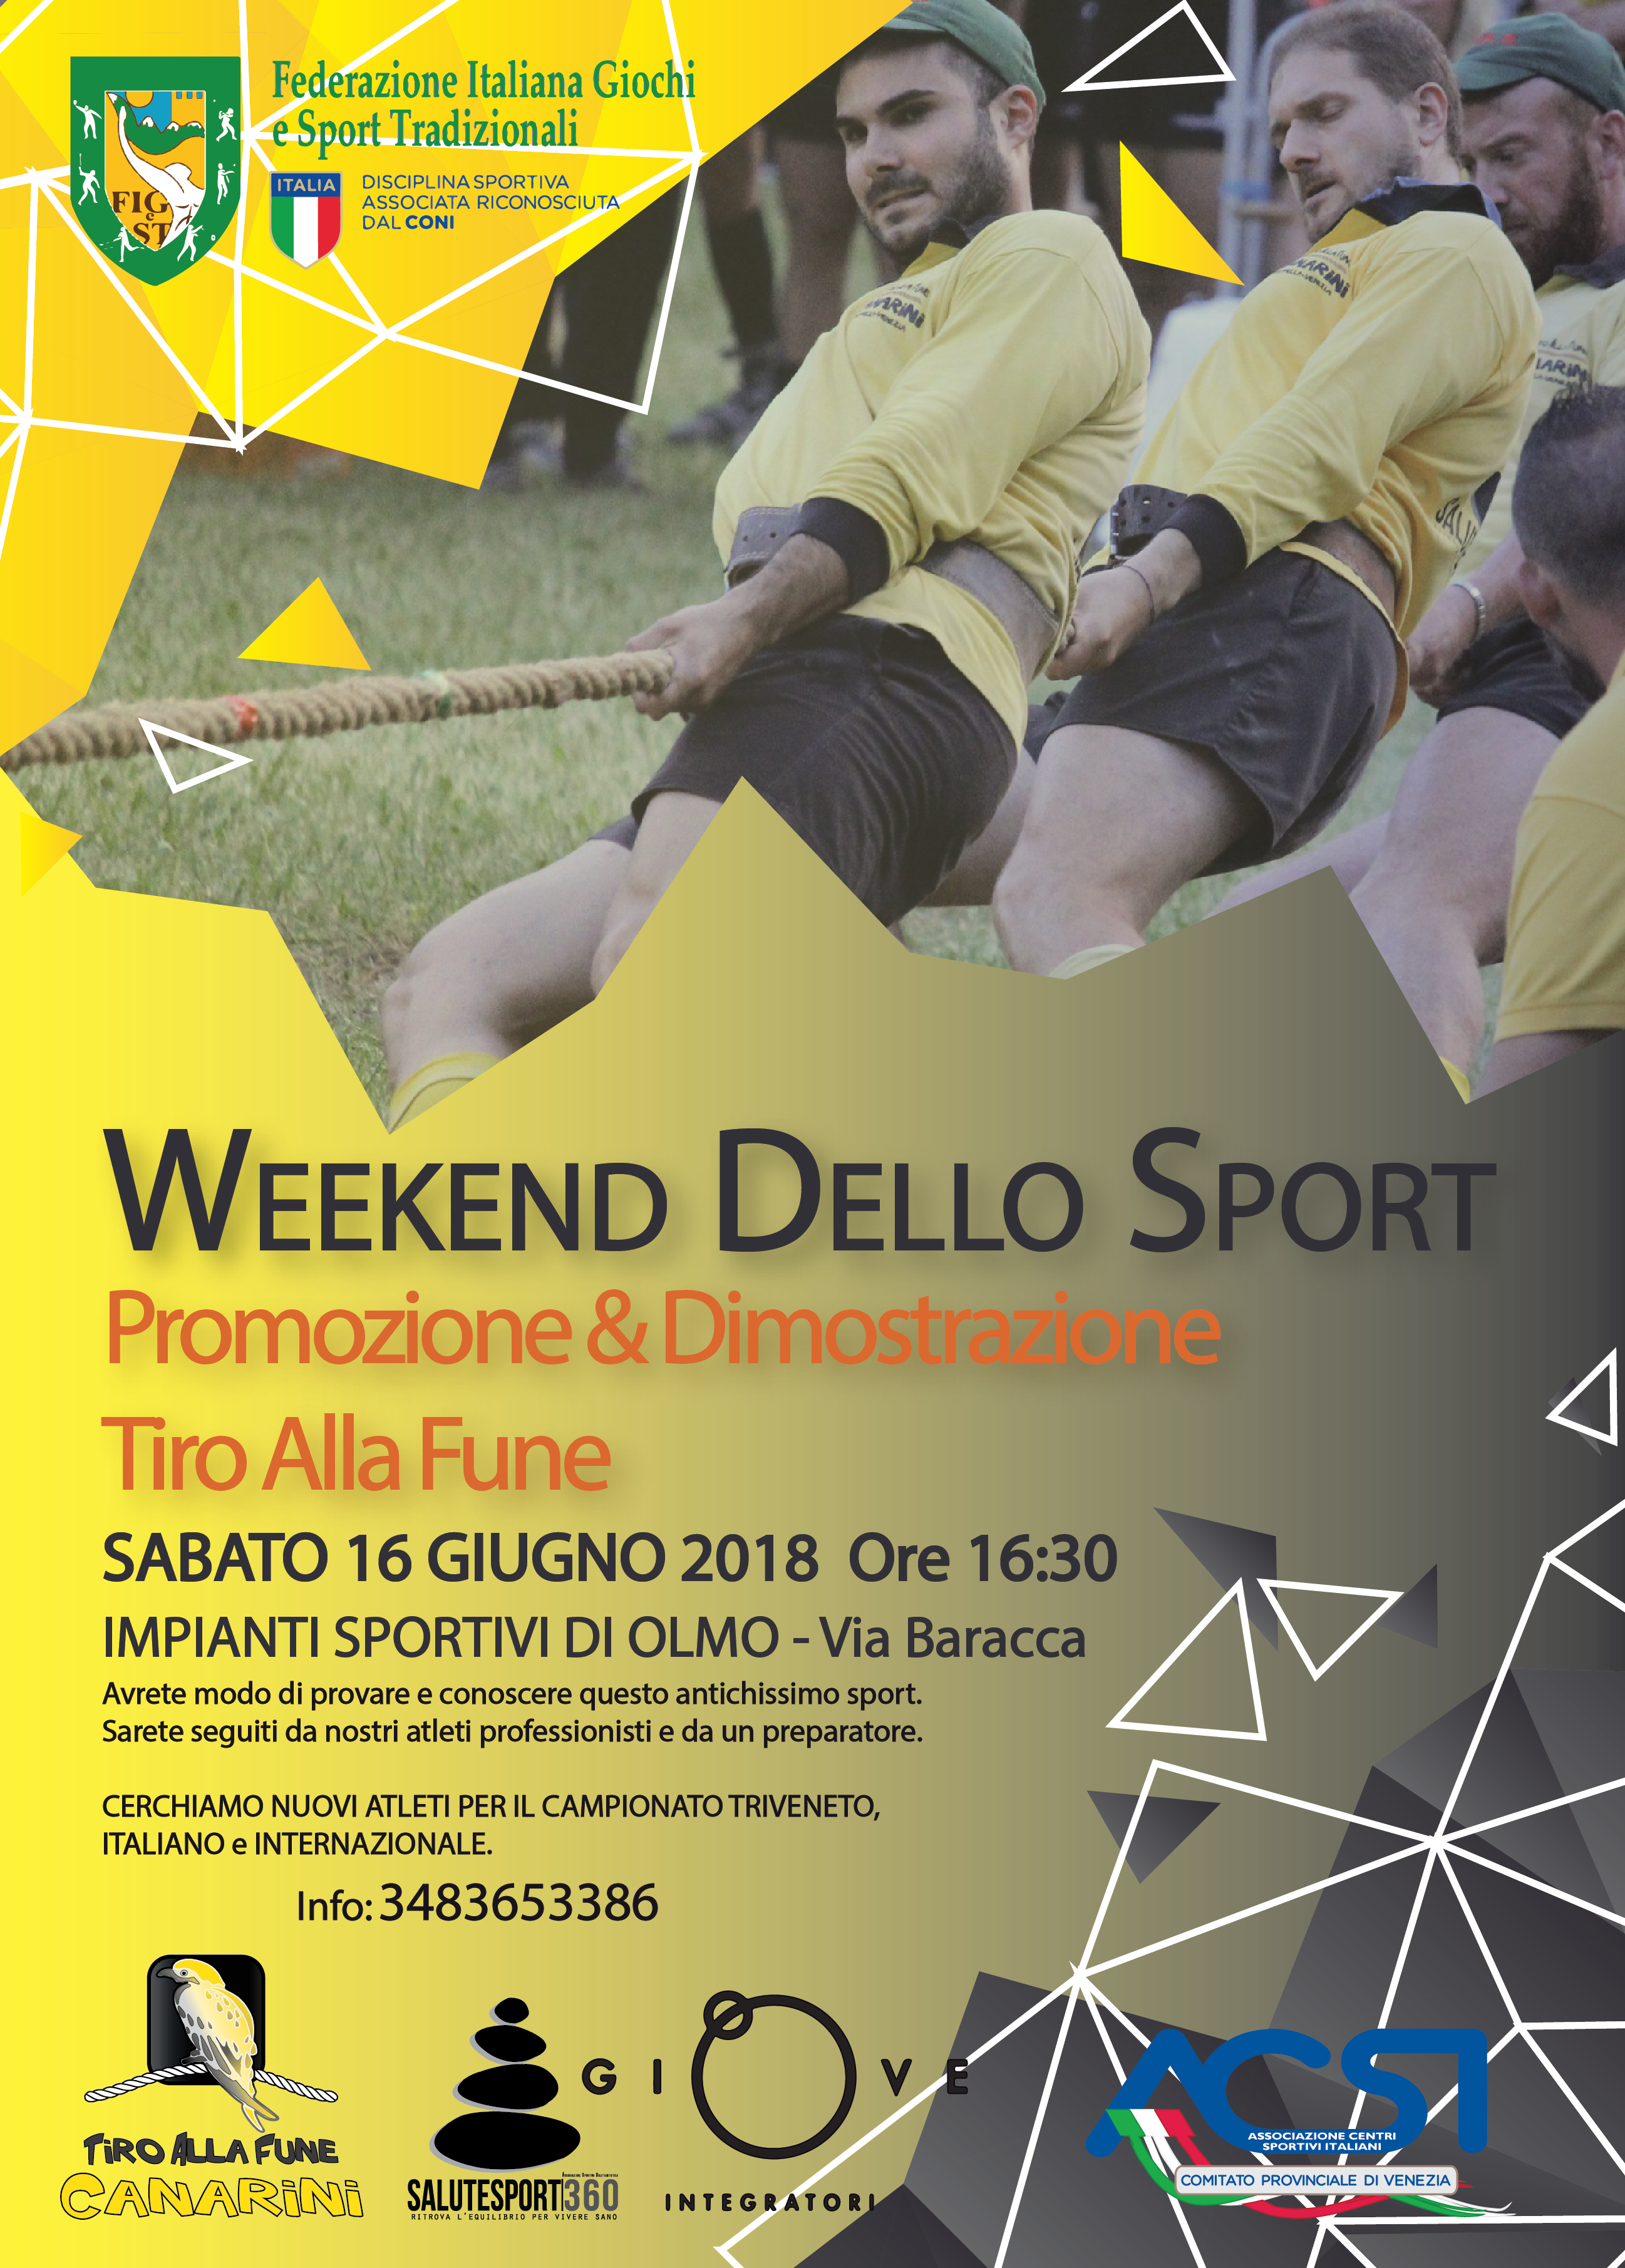 week end dello sport Tiro alla fune